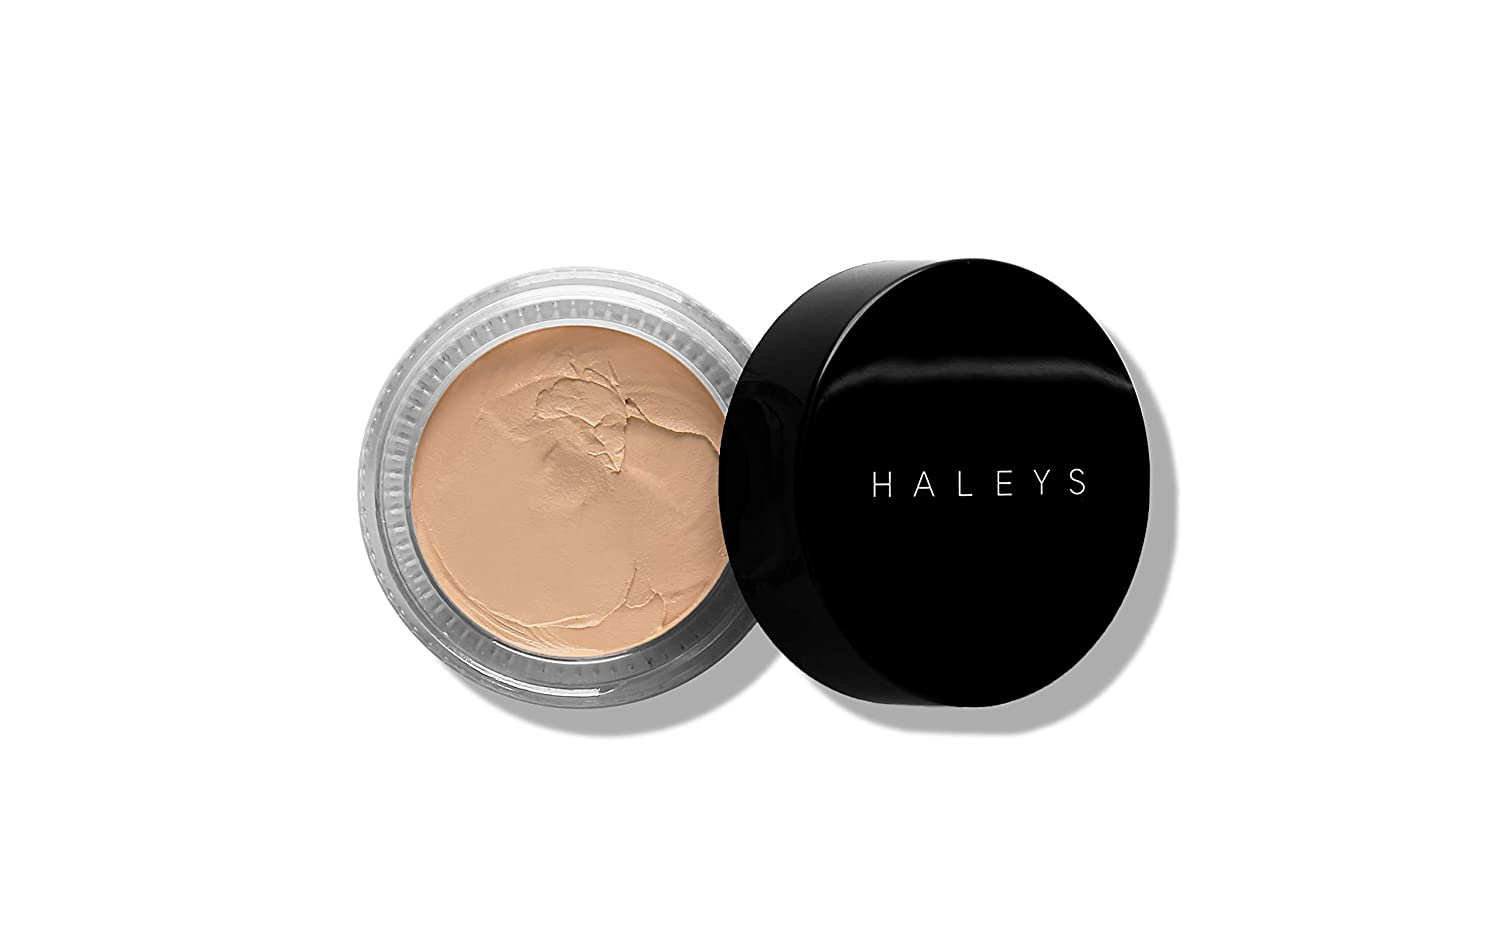 HALEYS RE:VEAL Mousse Makeup (4.25) Vegan, Cruelty-Free Whipped Foundation - Even Skin Tone and Cover Imperfections with Buildable Coverage for a Smooth, Natural Complexion